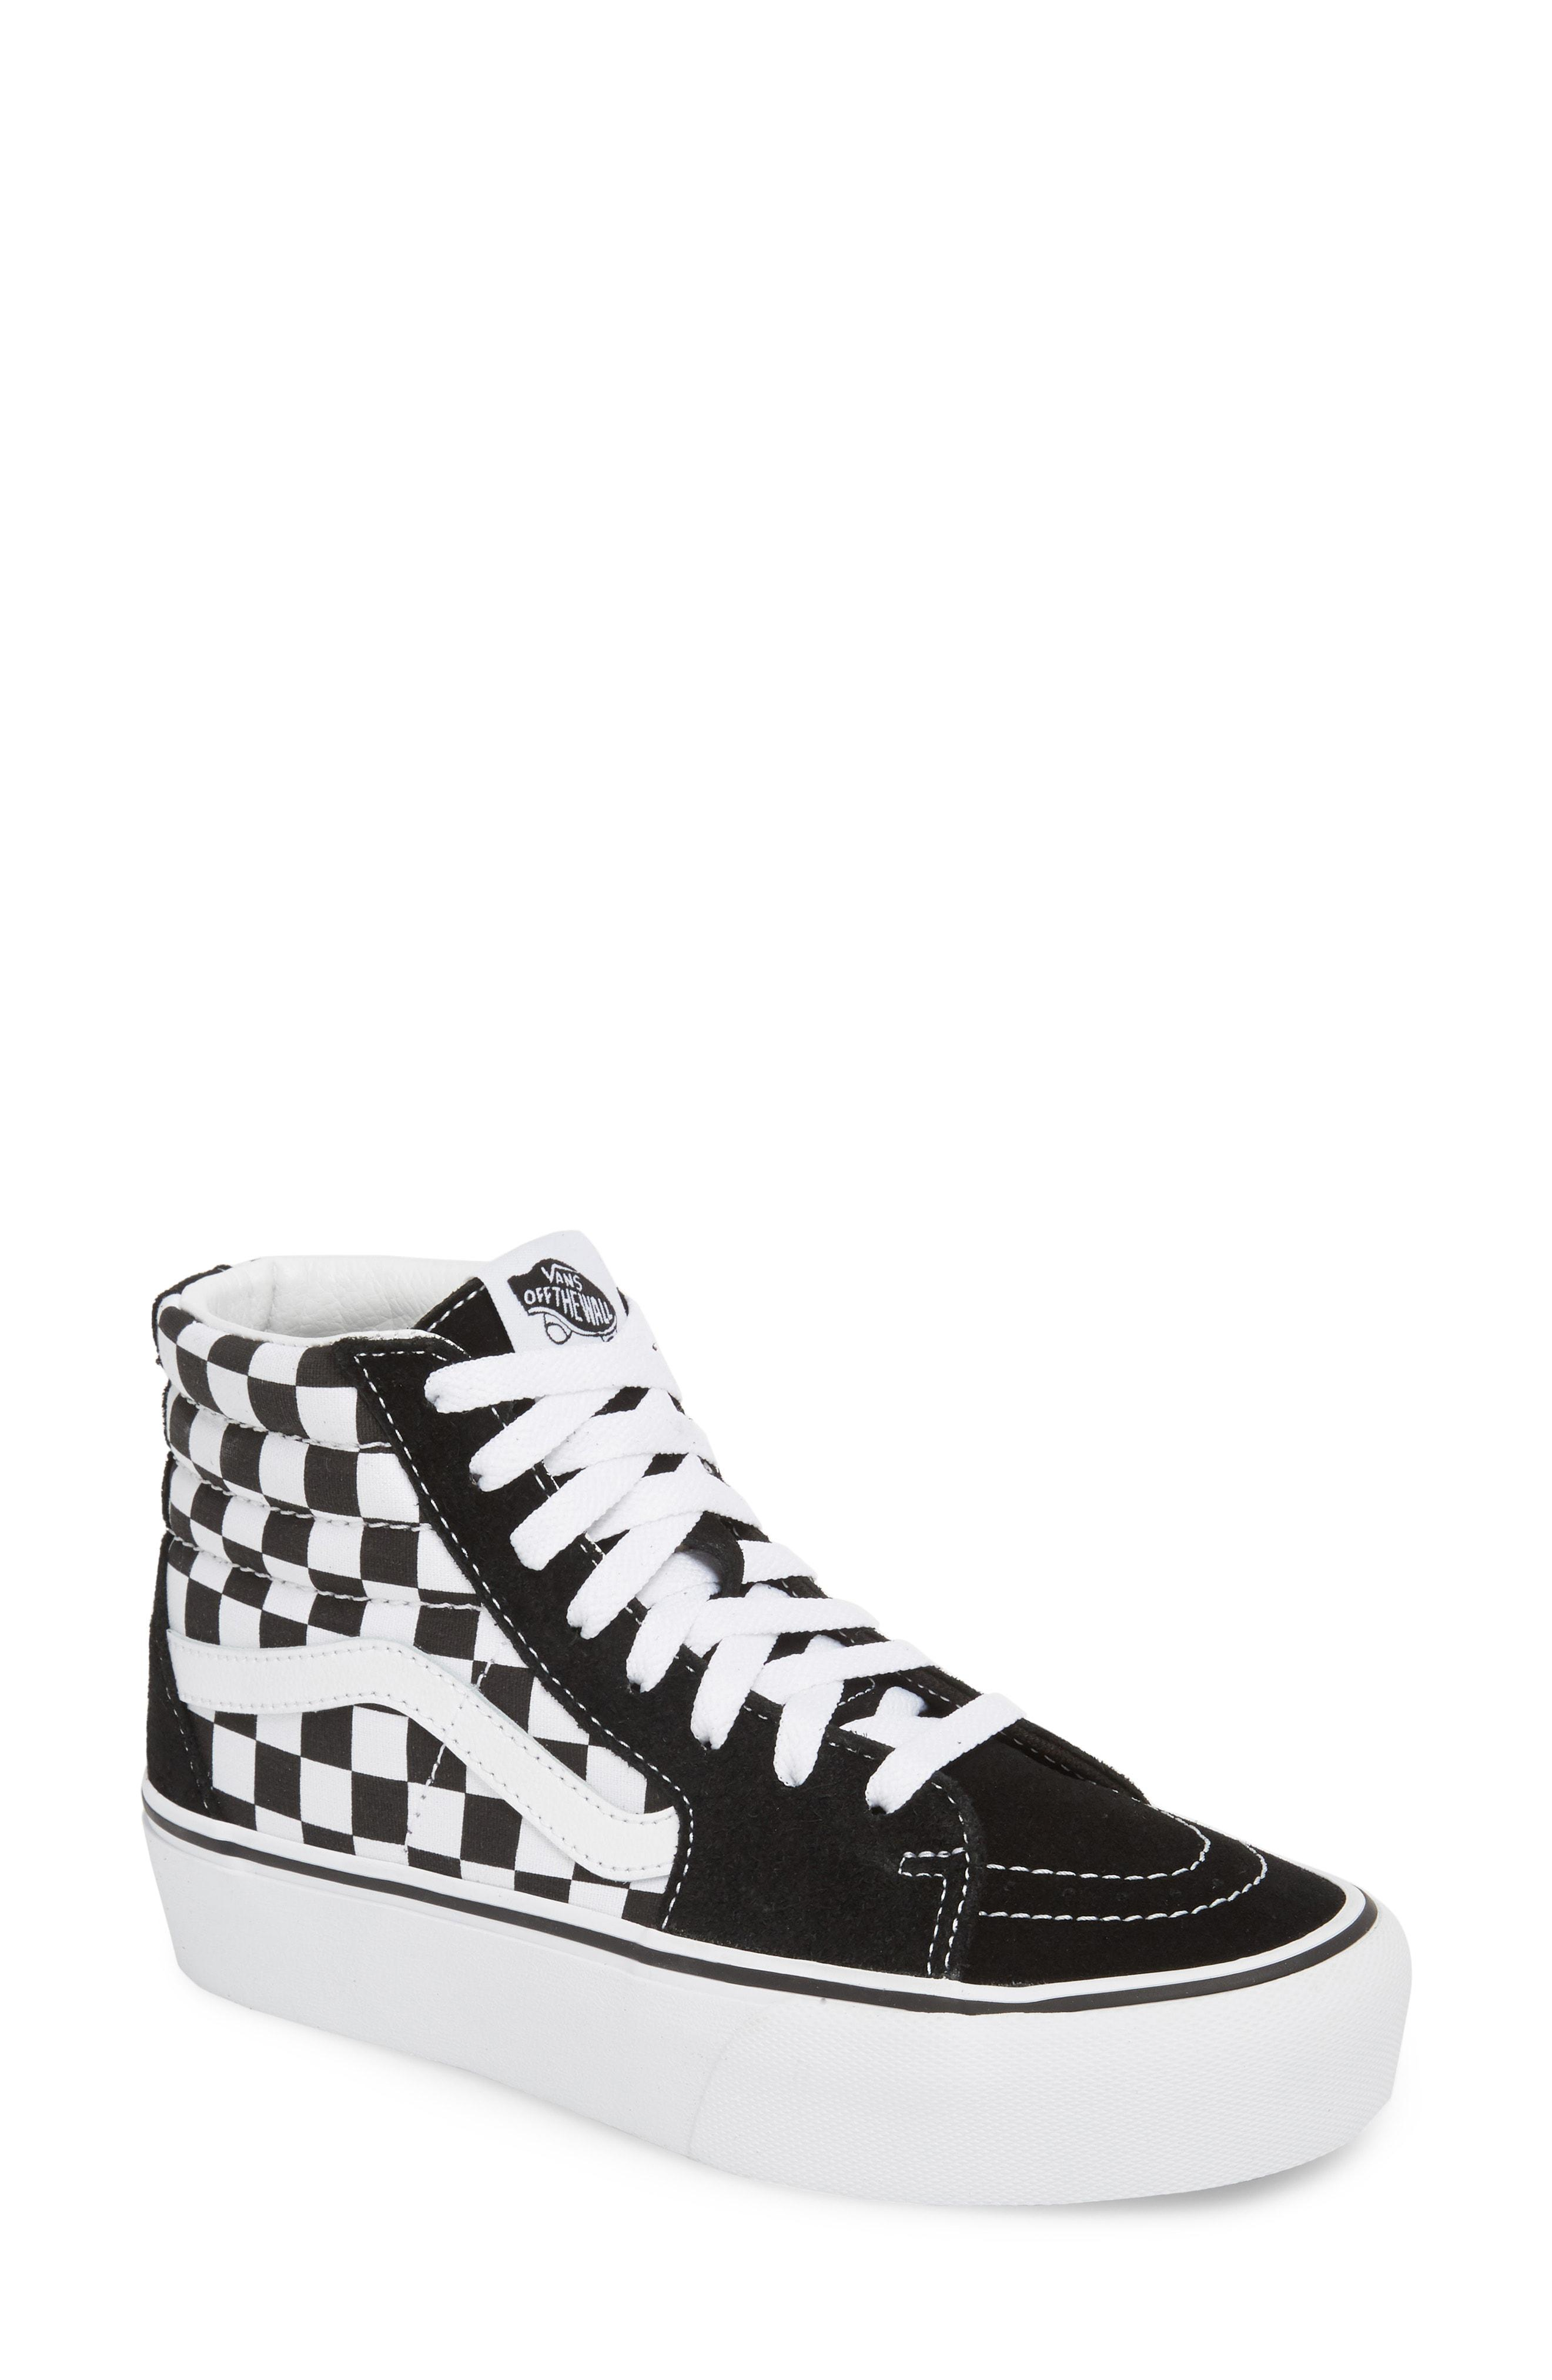 Vans Ua Sk8-hi Platform Checkerboard Sneaker in White - Lyst d886fee6c